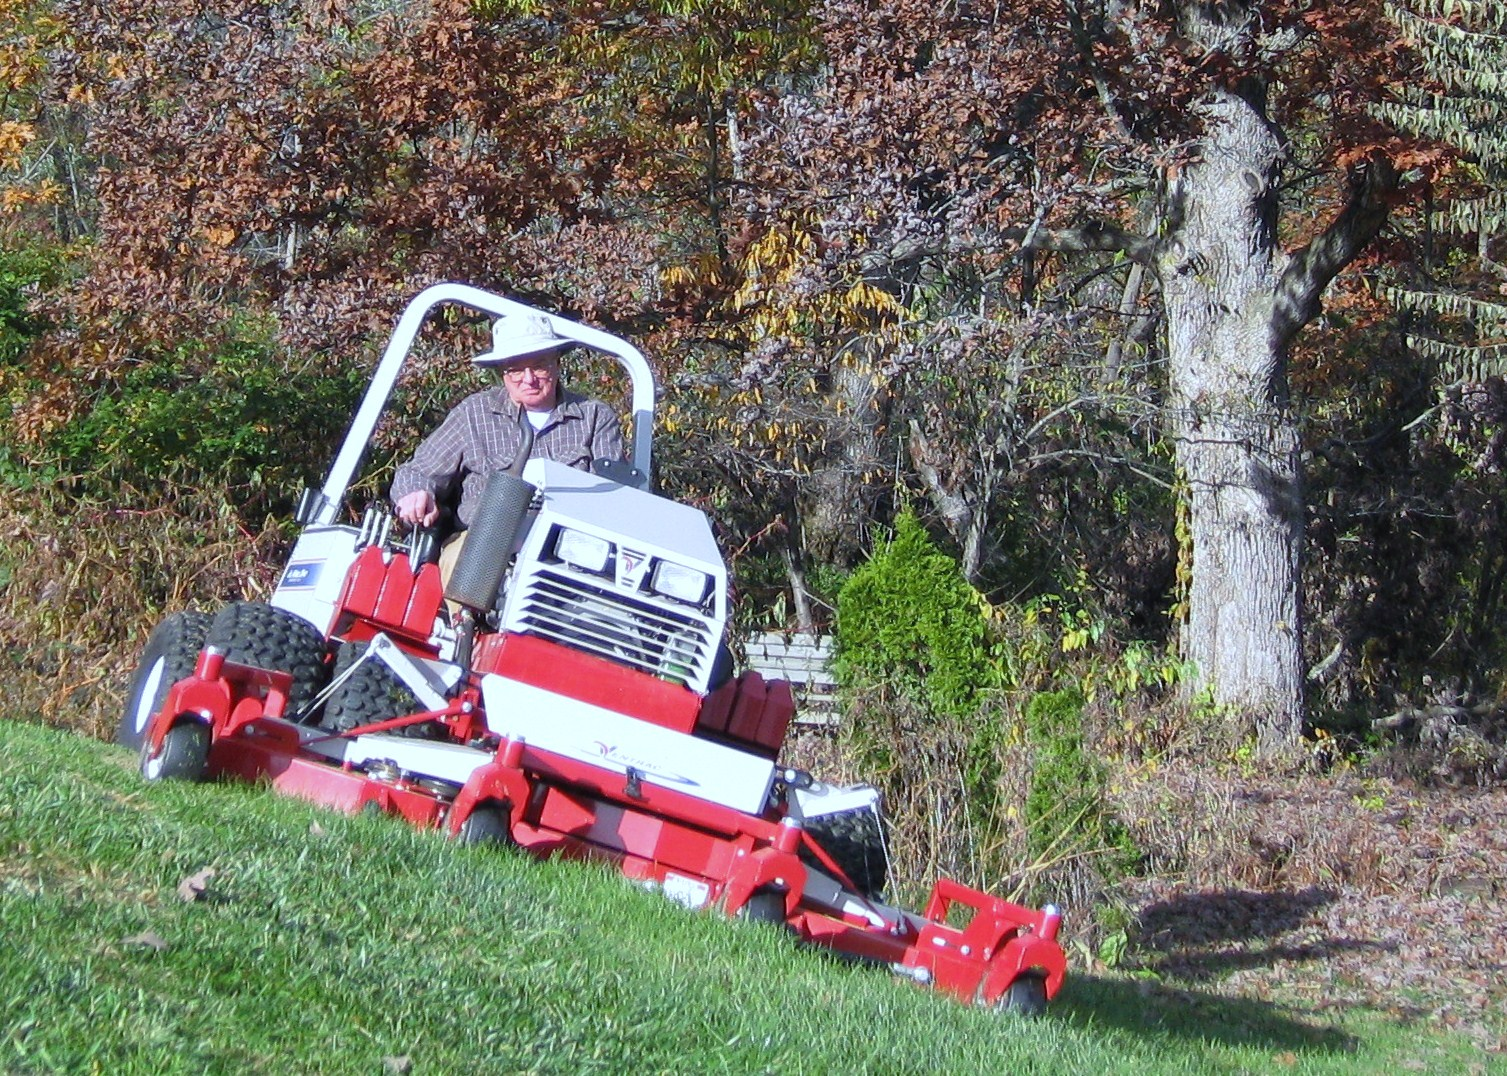 Ventrac contour mower mowing 28 degree slope